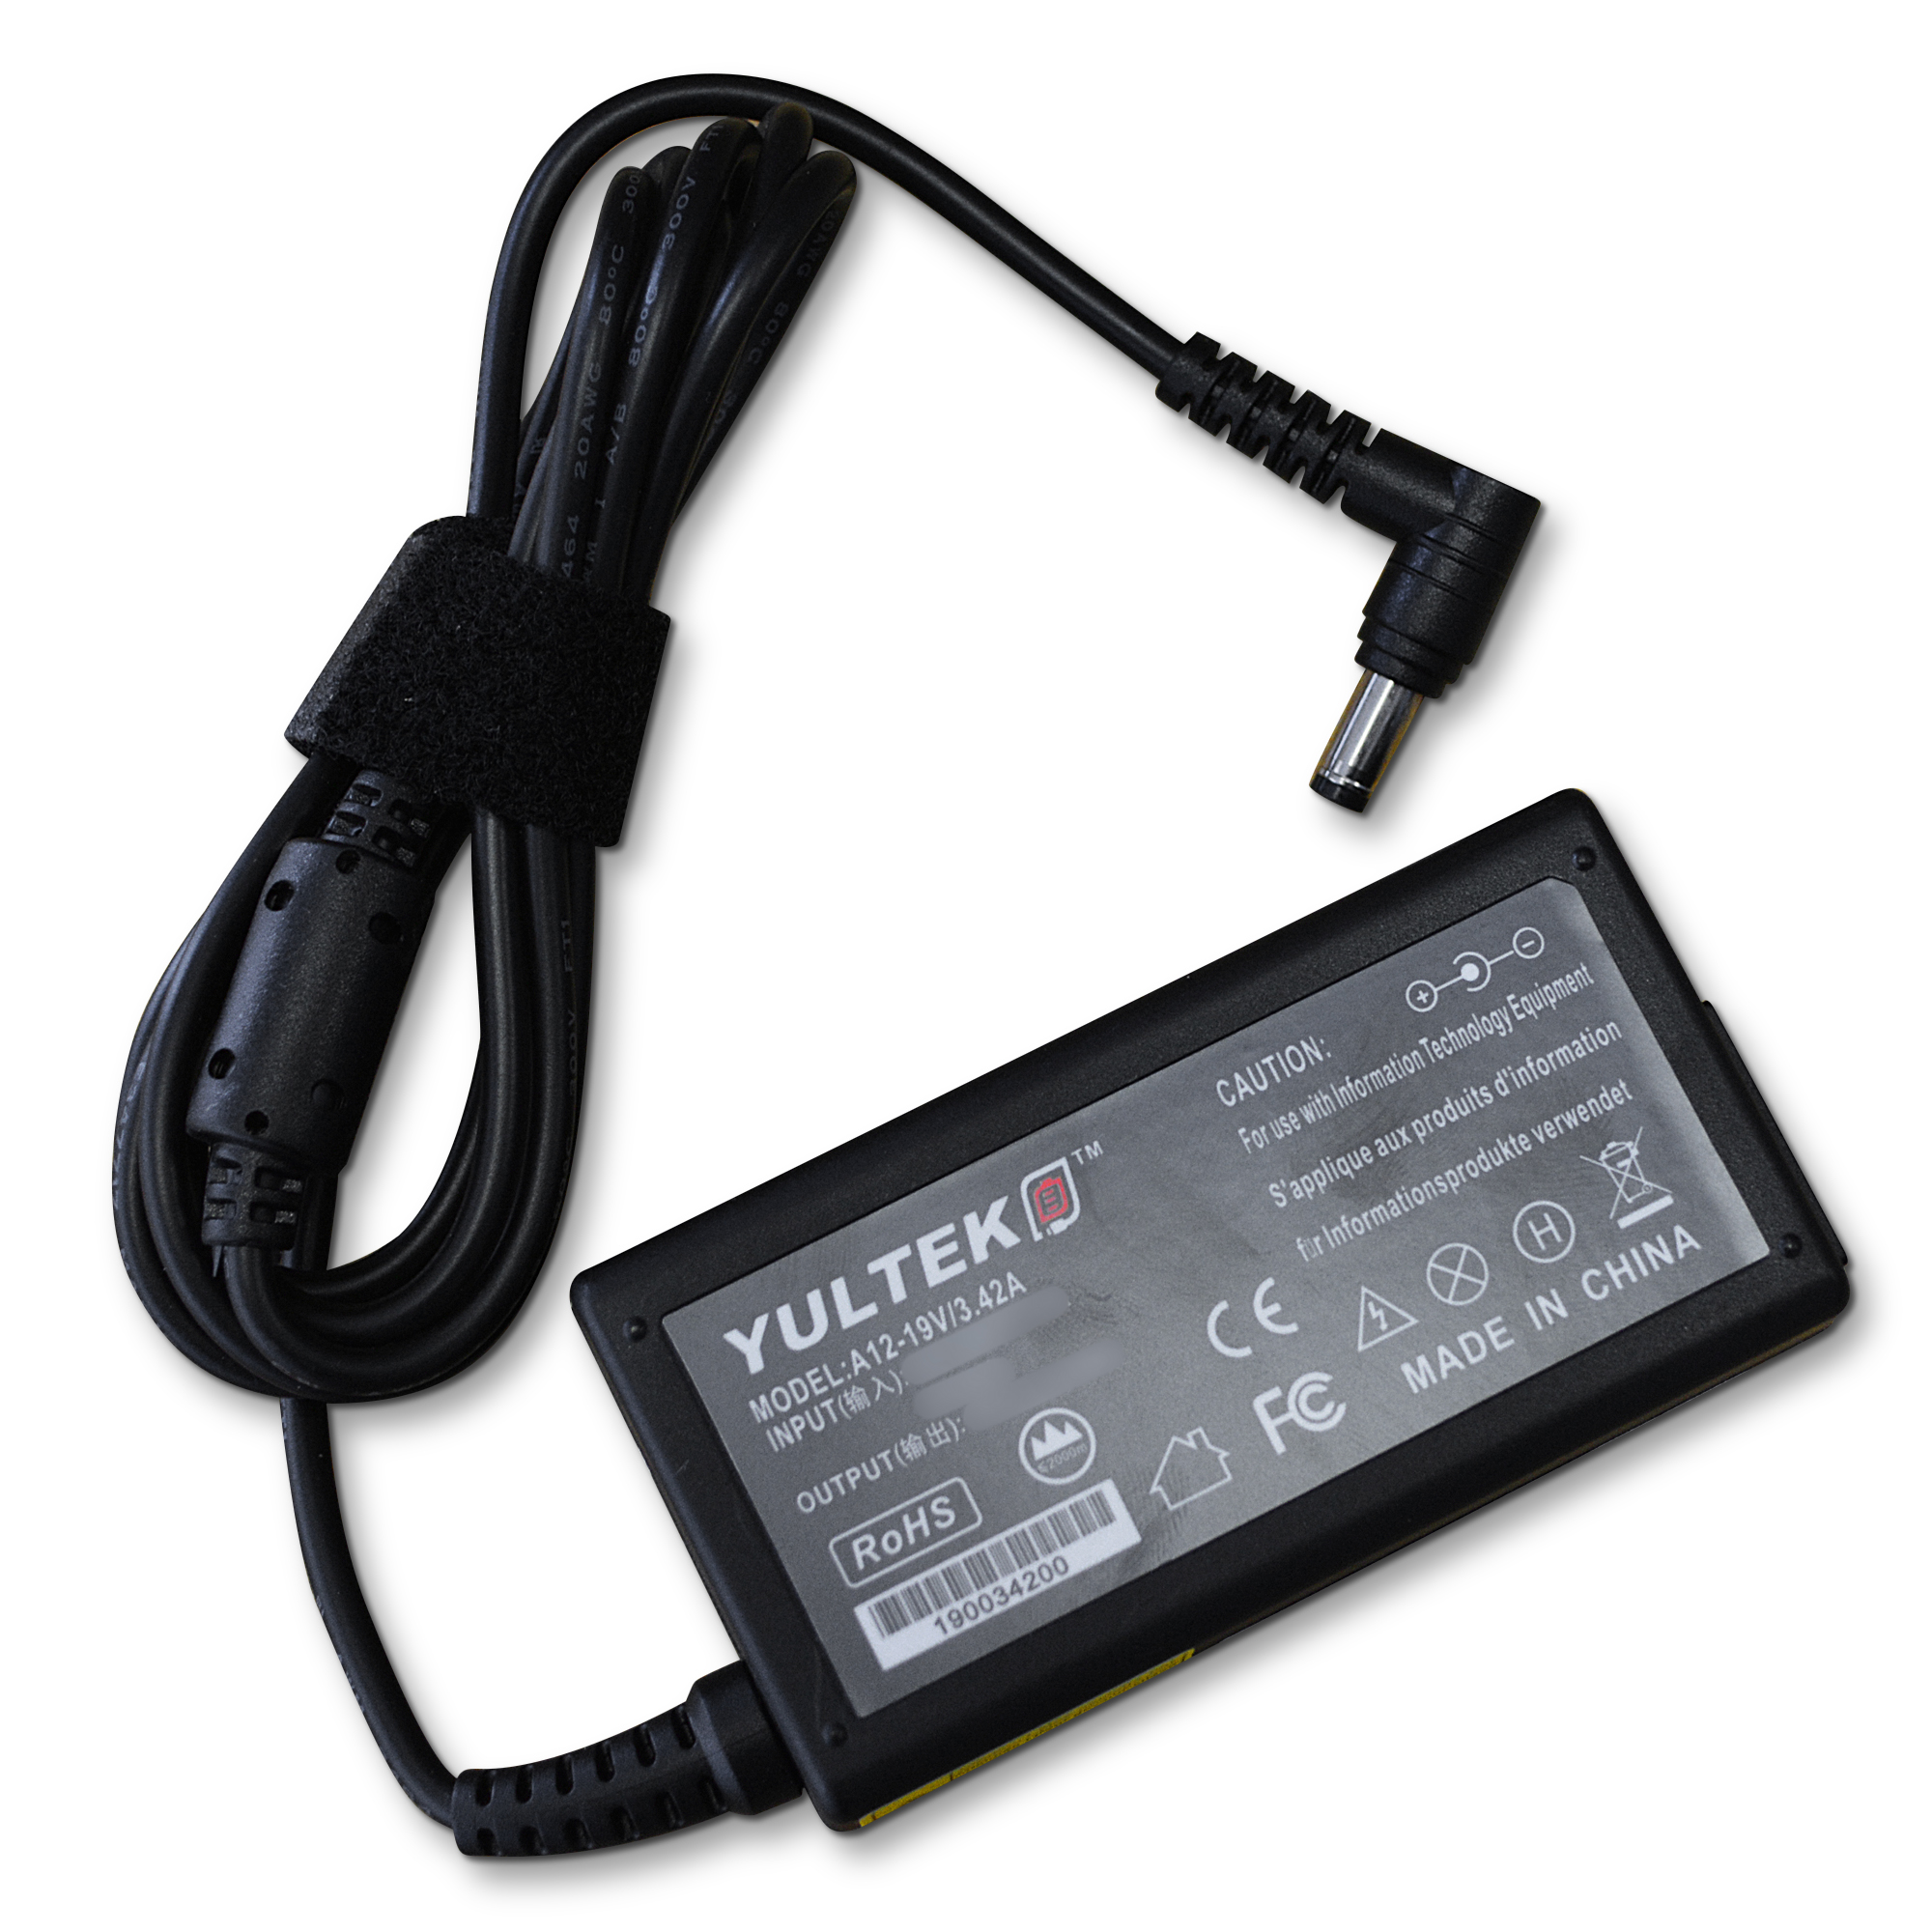 Fujitsu-Siemens Part Number FSP:811002424 Laptop Charger